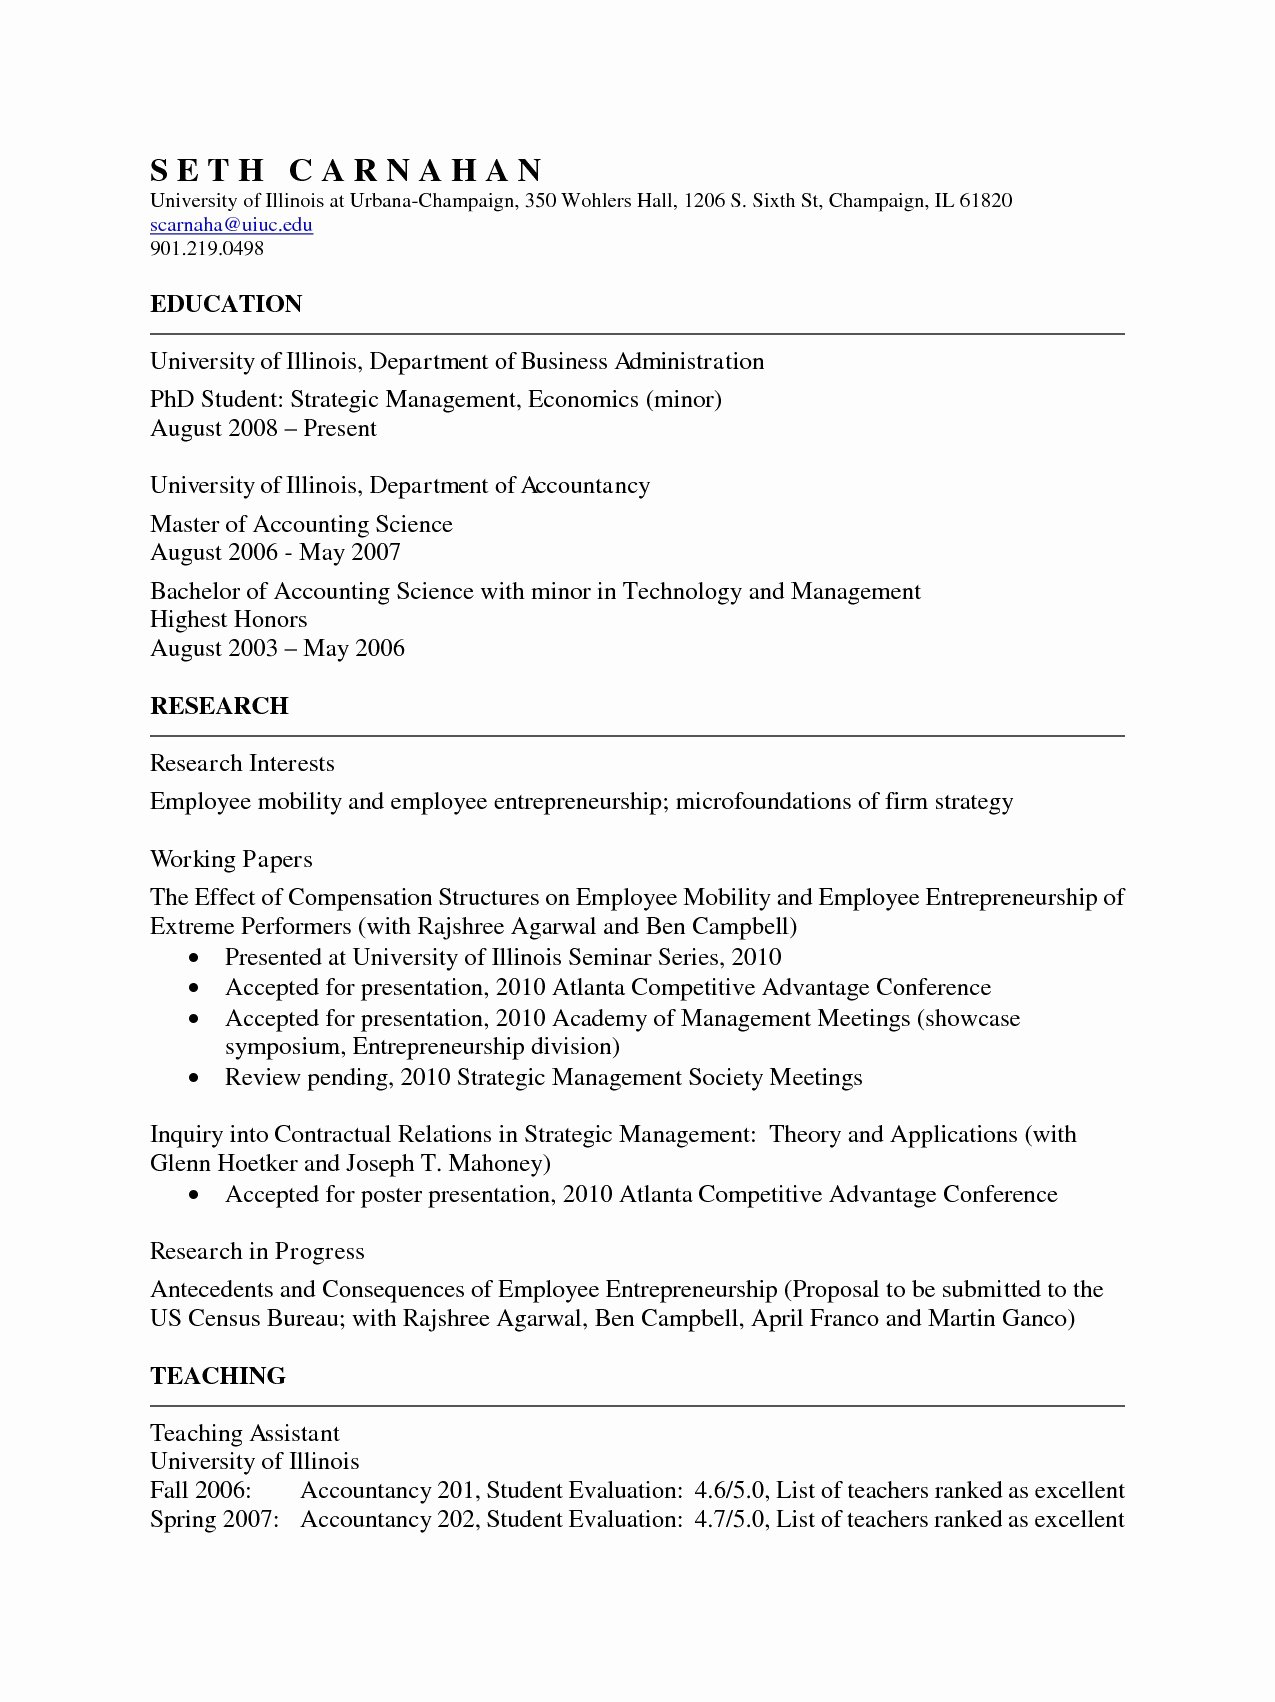 Undergraduate Resume Template Word Best Of Cv format for Australian Universities All Resume